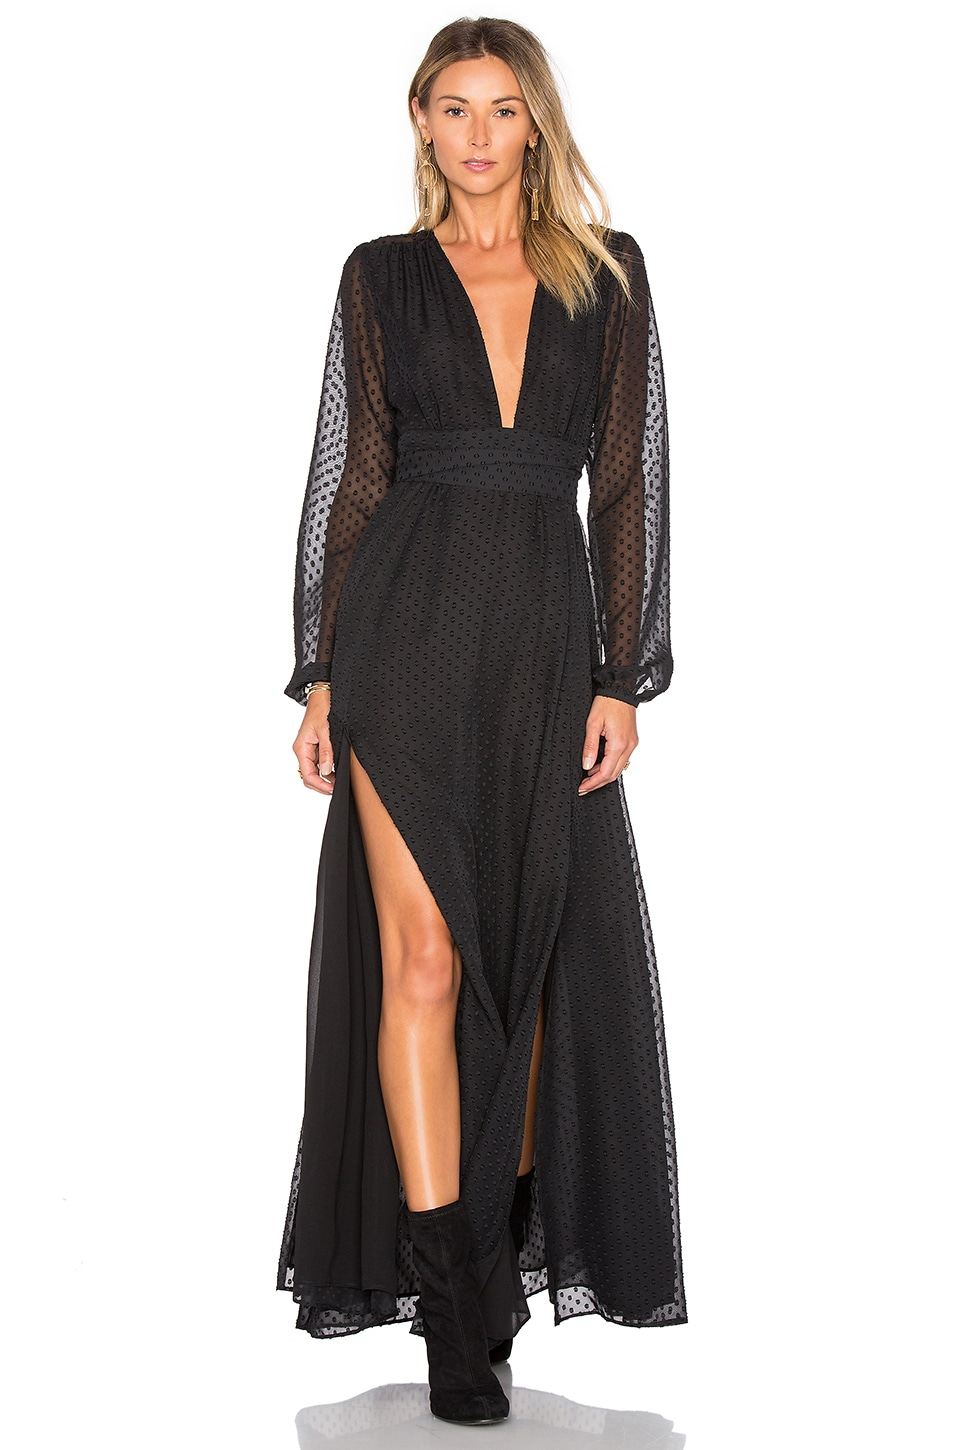 Privacy Please Stockton Dress in Black